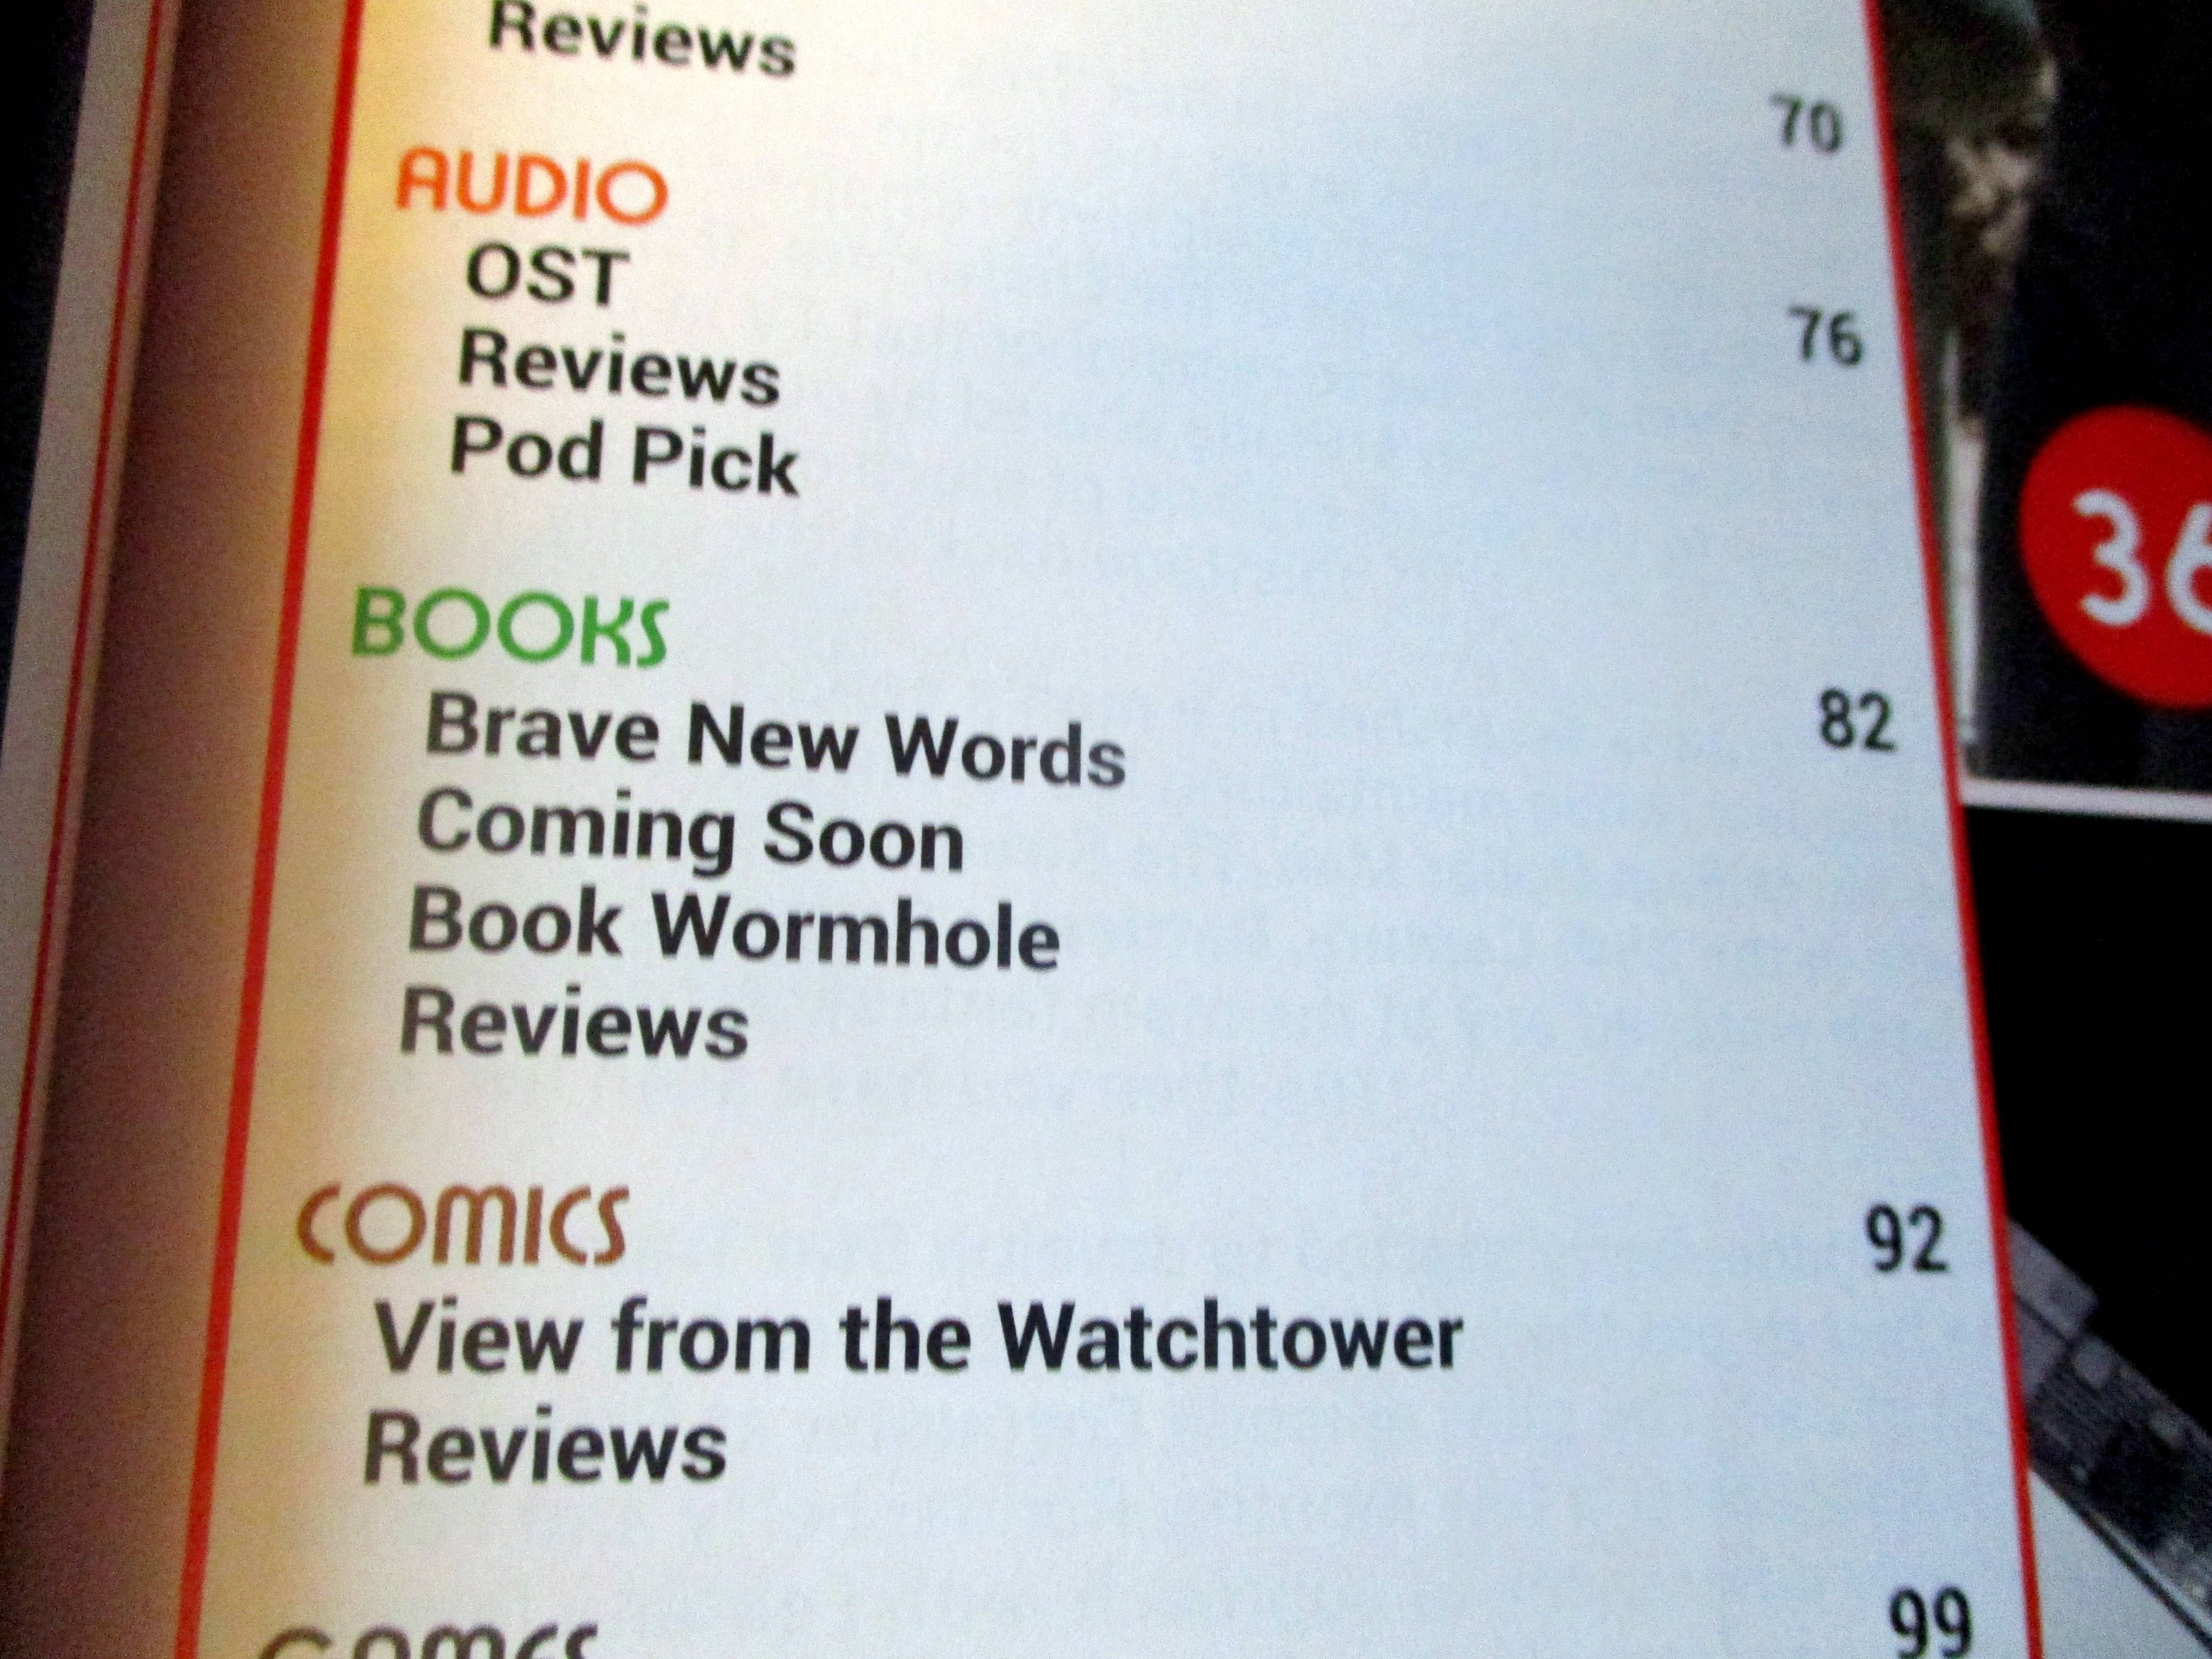 Subsection of Table of Contents with Regulars on Books in Starburst Magazine #468: 2020 Preview Issue Collectors? Edition